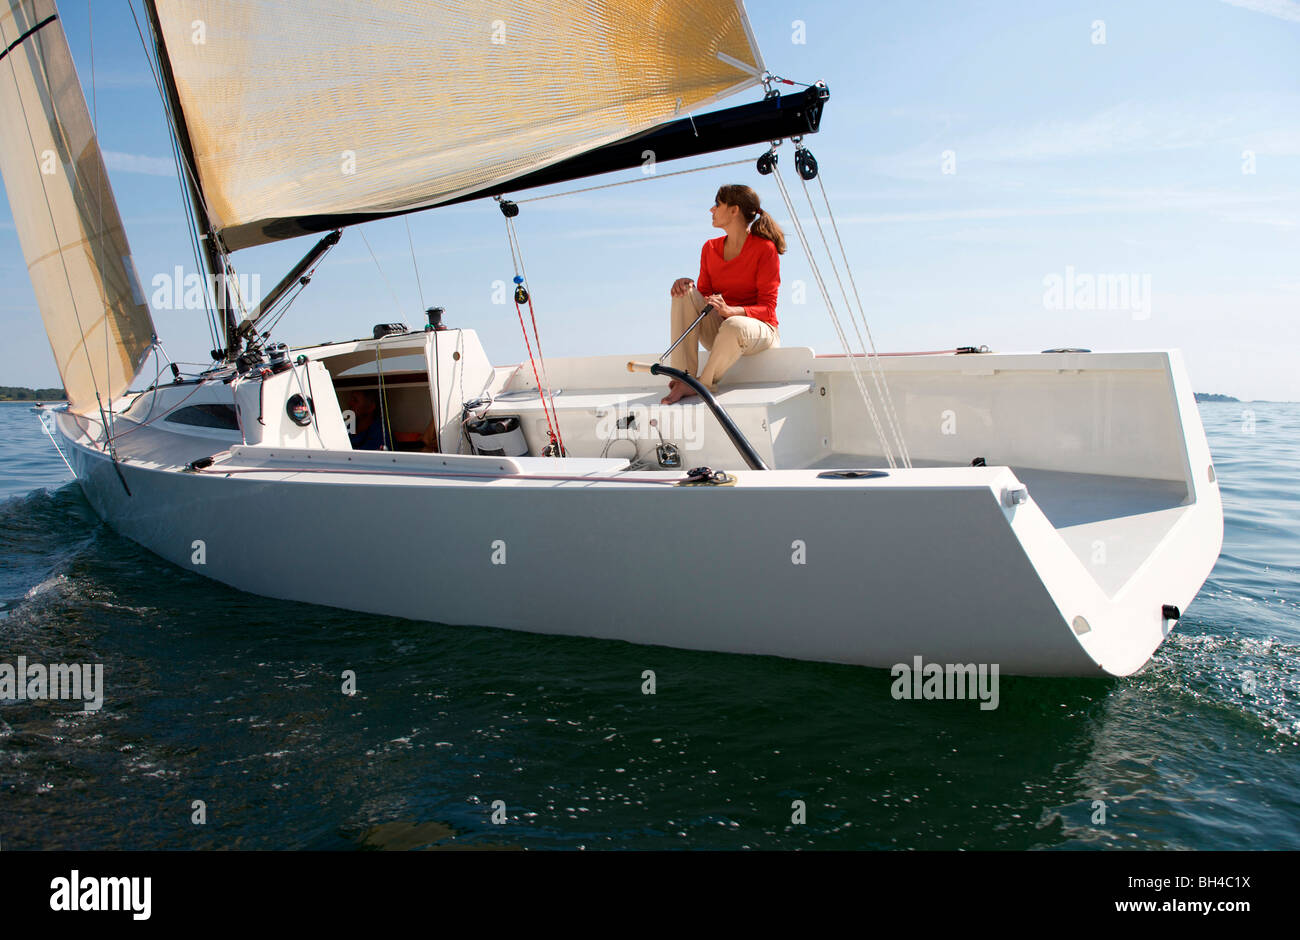 A woman enjoying a sunny day on board a daysailer on Casco Bay, Maine. - Stock Image